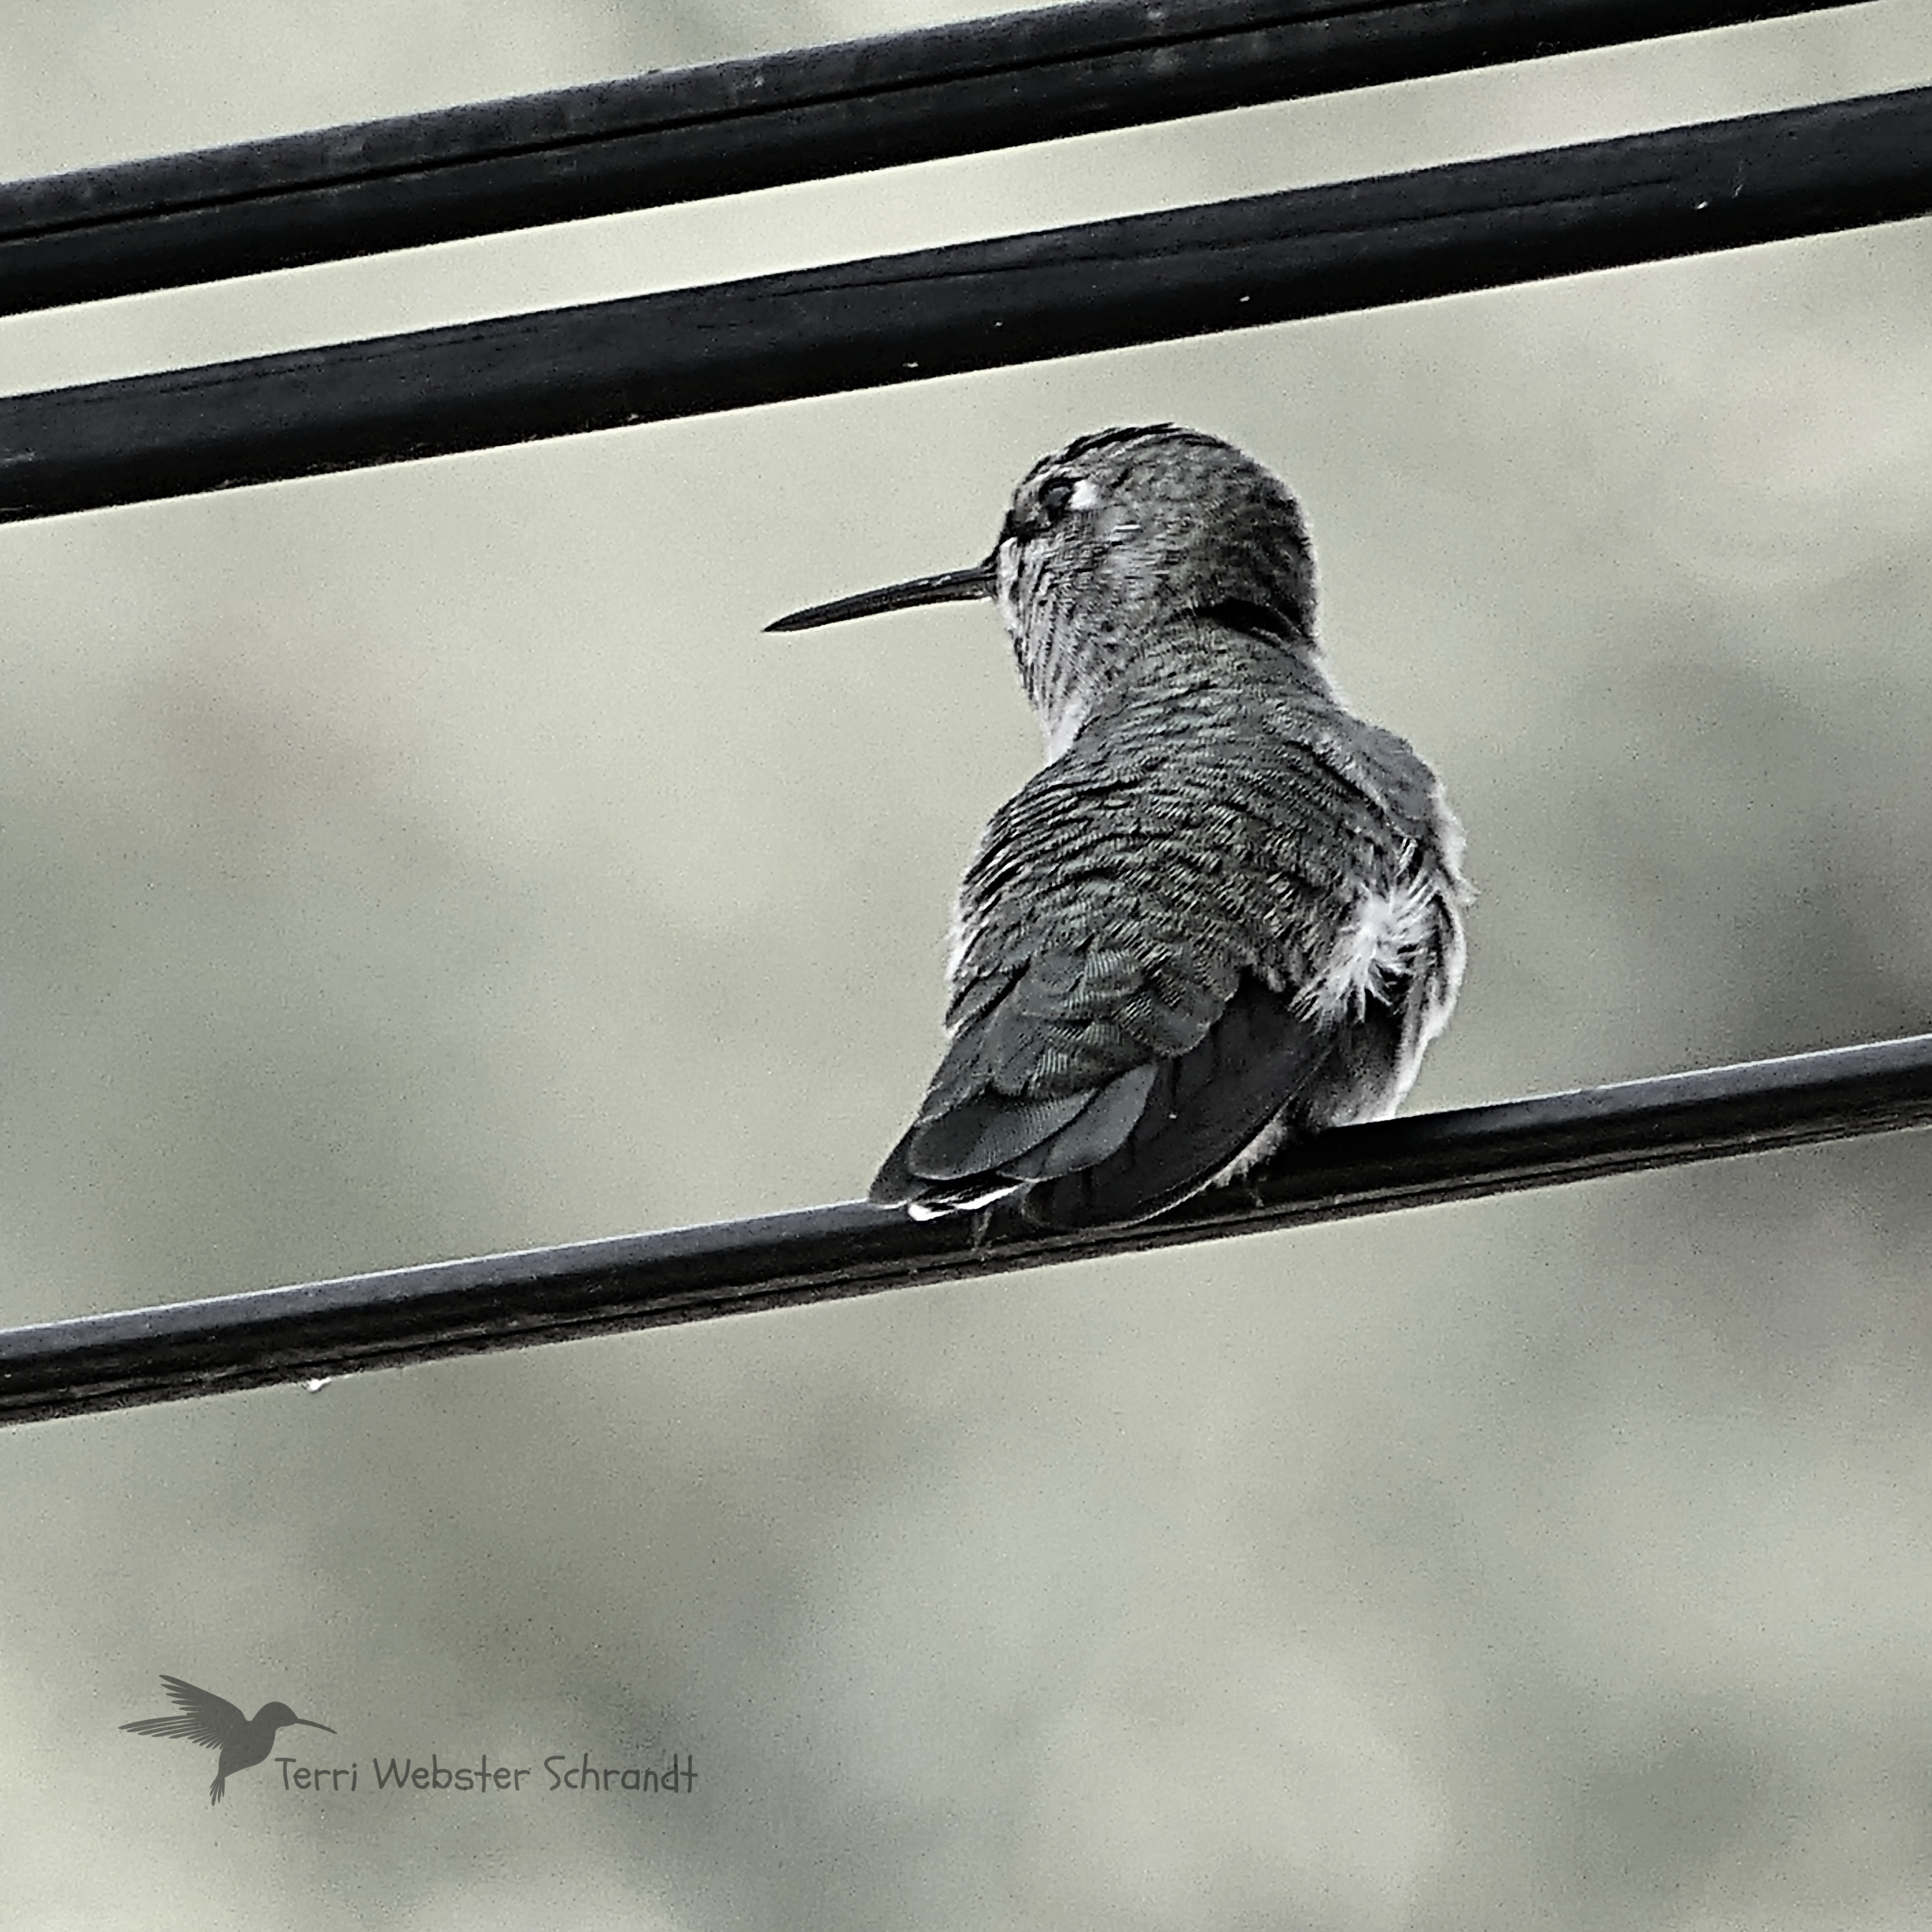 Hummer shades of gray